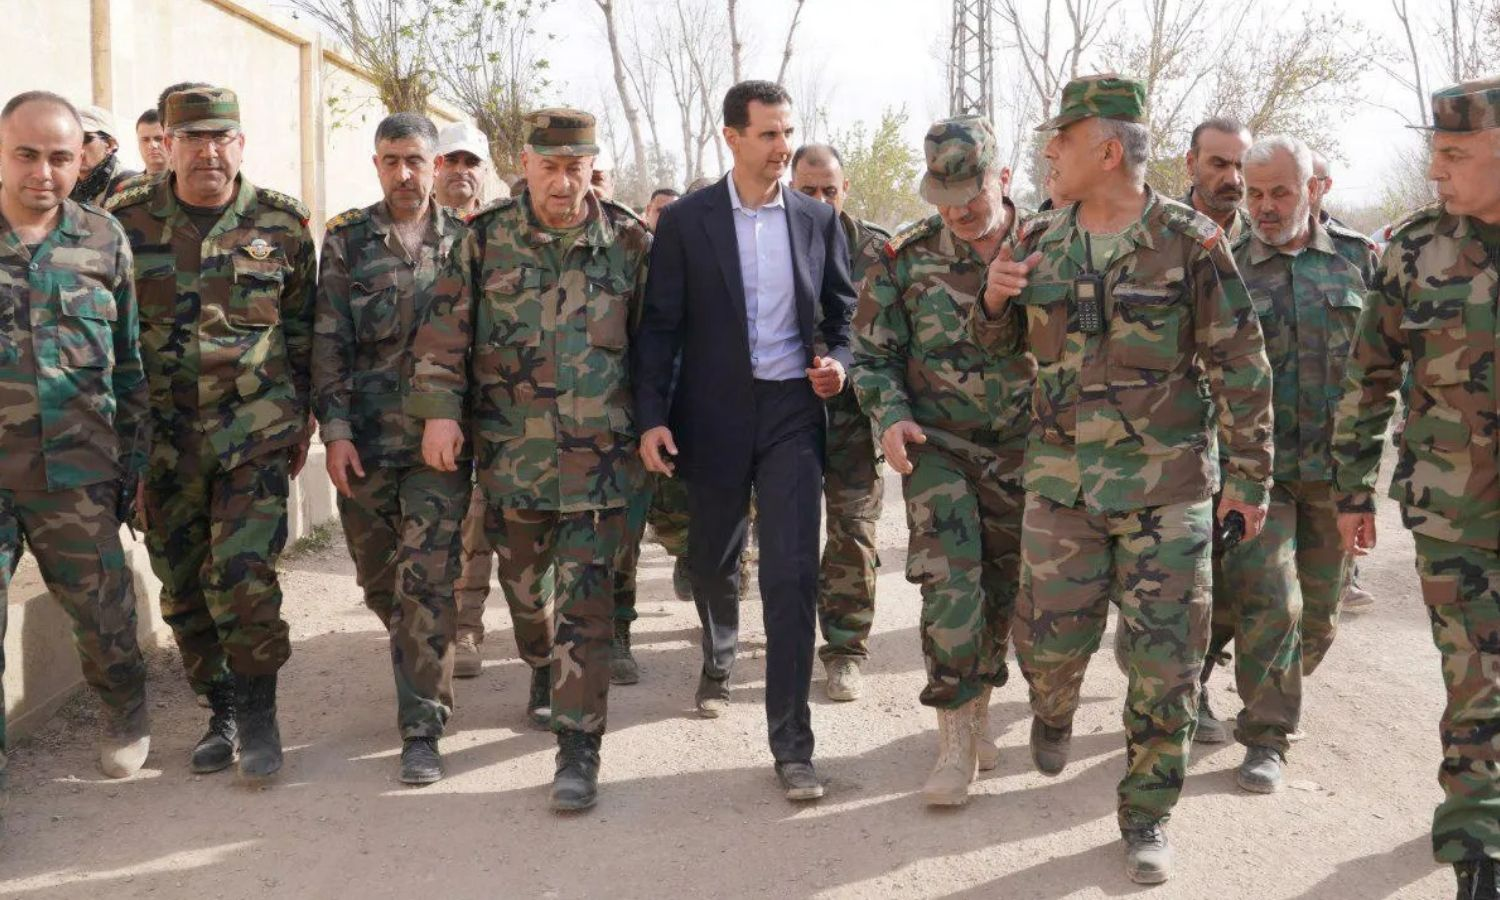 Head of the Syrian regime Bashar al-Assad visiting forces in rural Damascus -18 March 2018 (SANA)